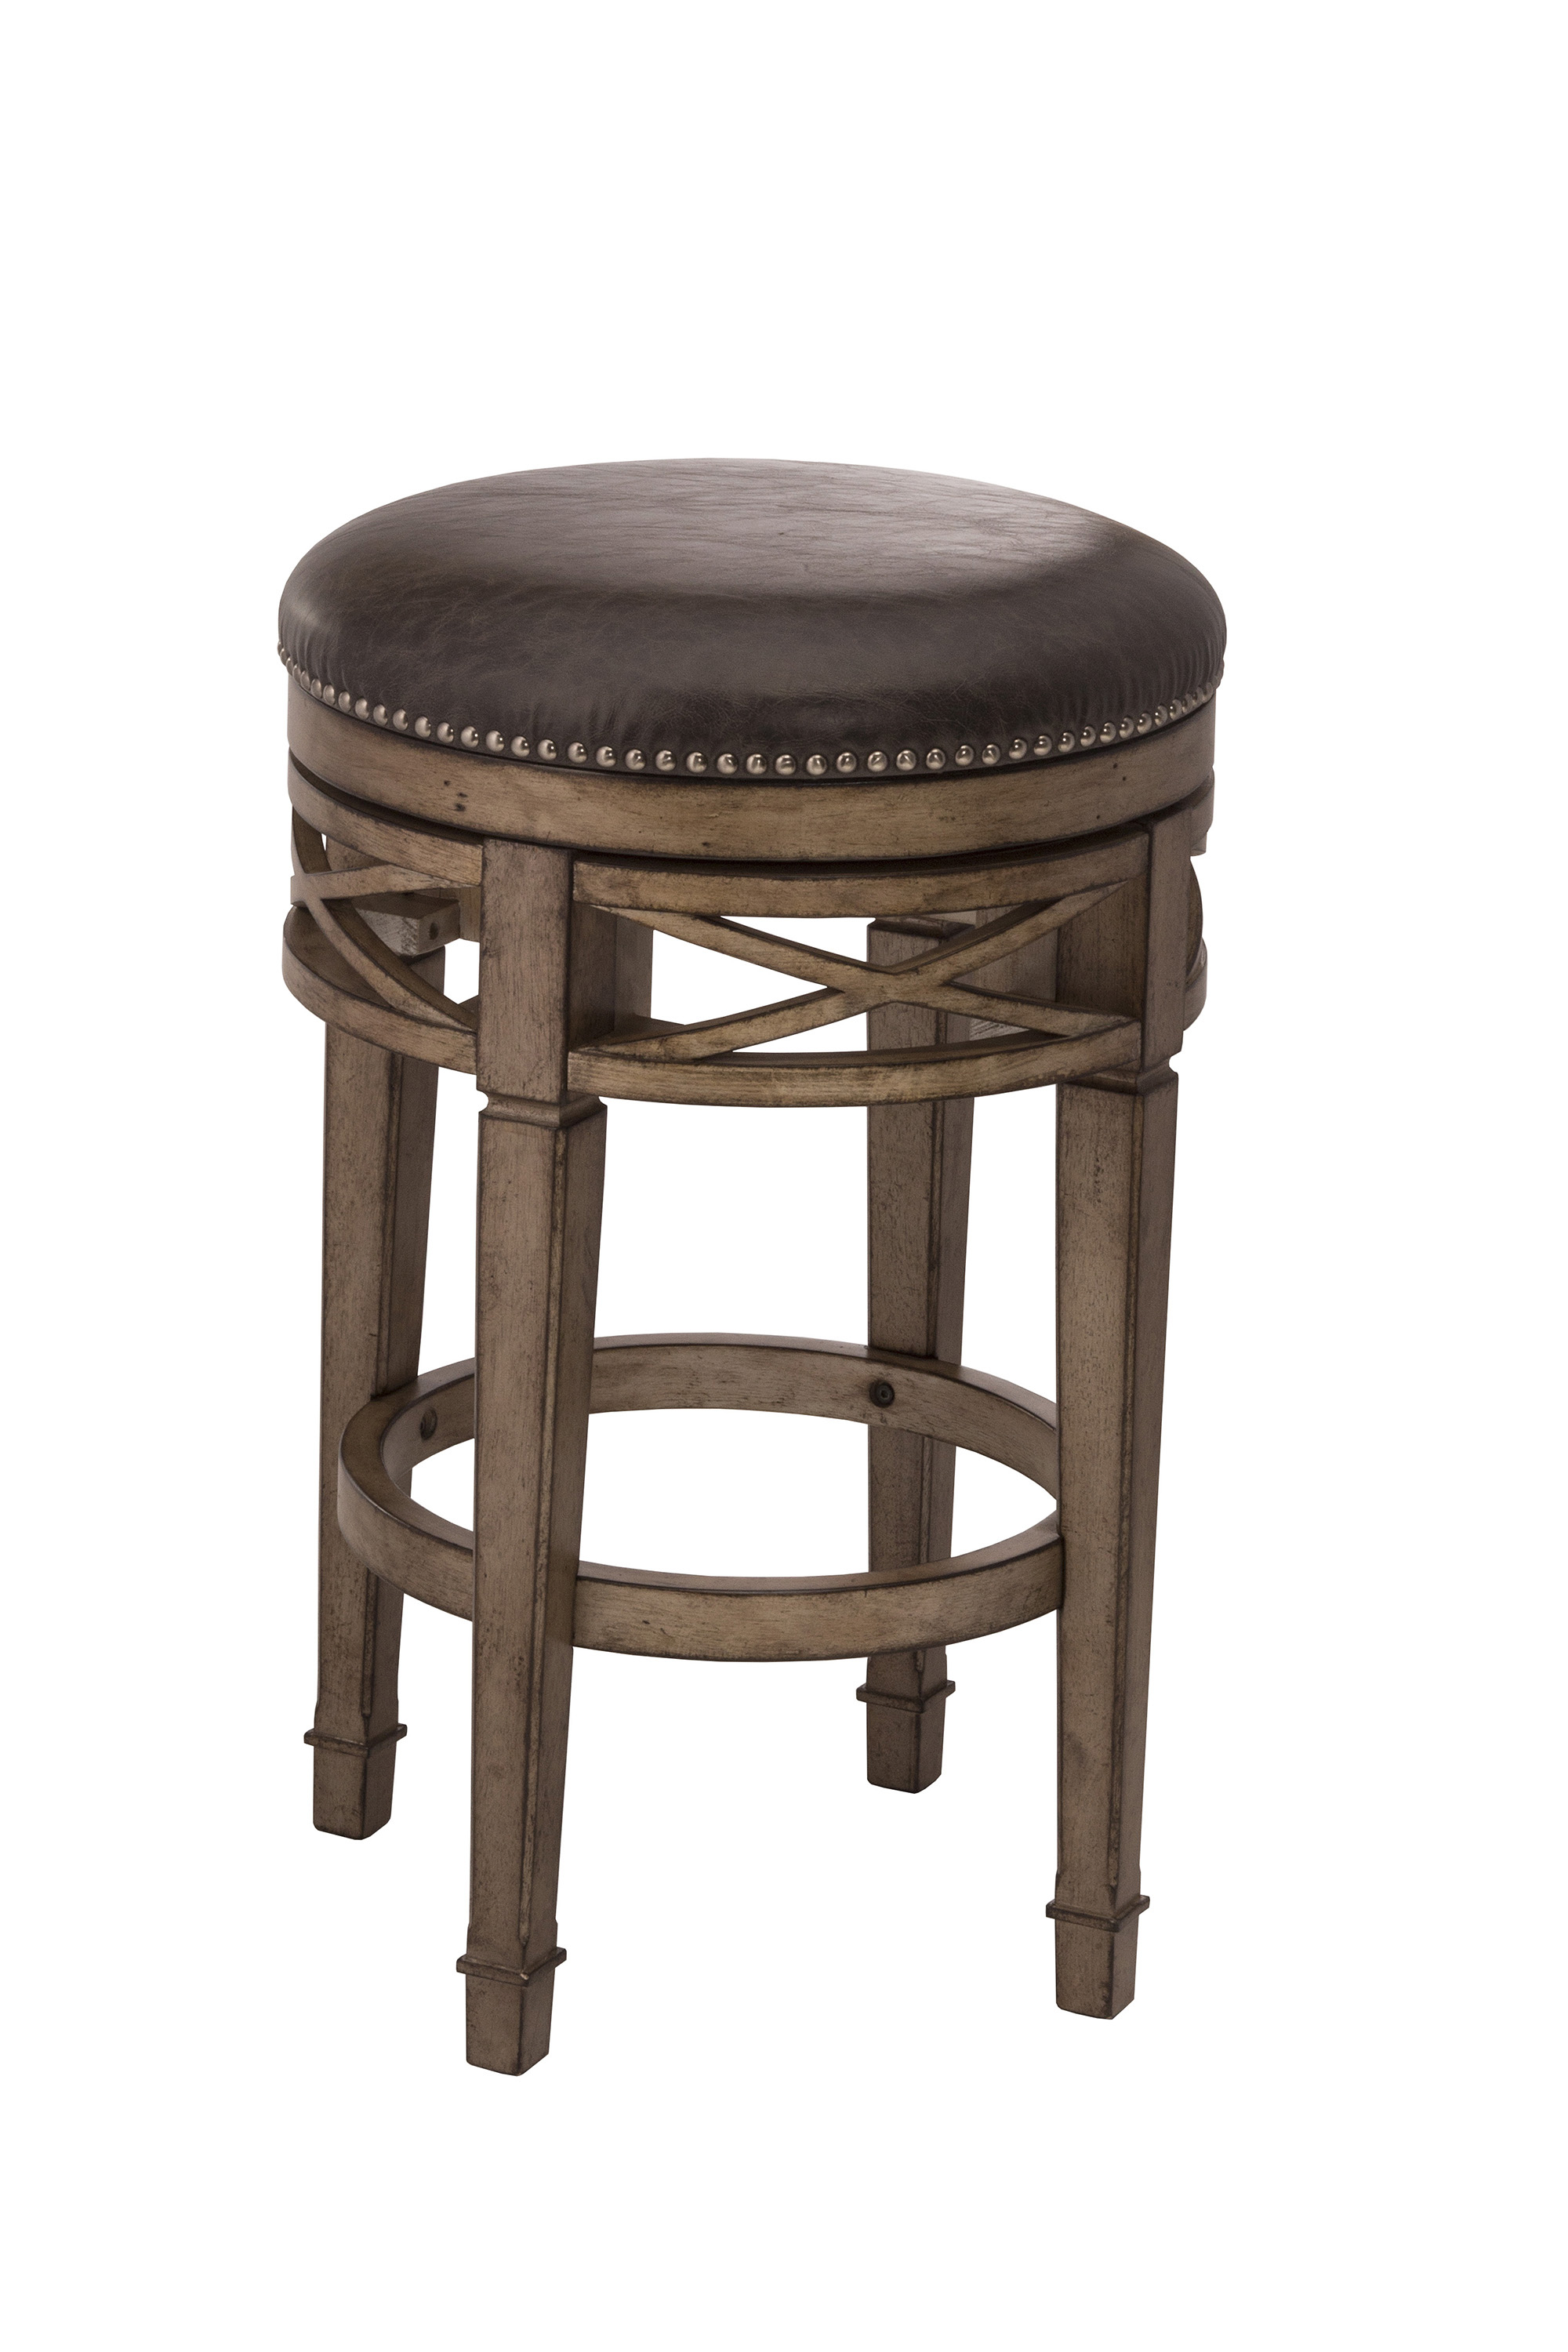 Hillsdale Backless Bar Stools 5609 826 Upholstered Backless Swivel Counter Stool Dunk Bright - Backless Stools